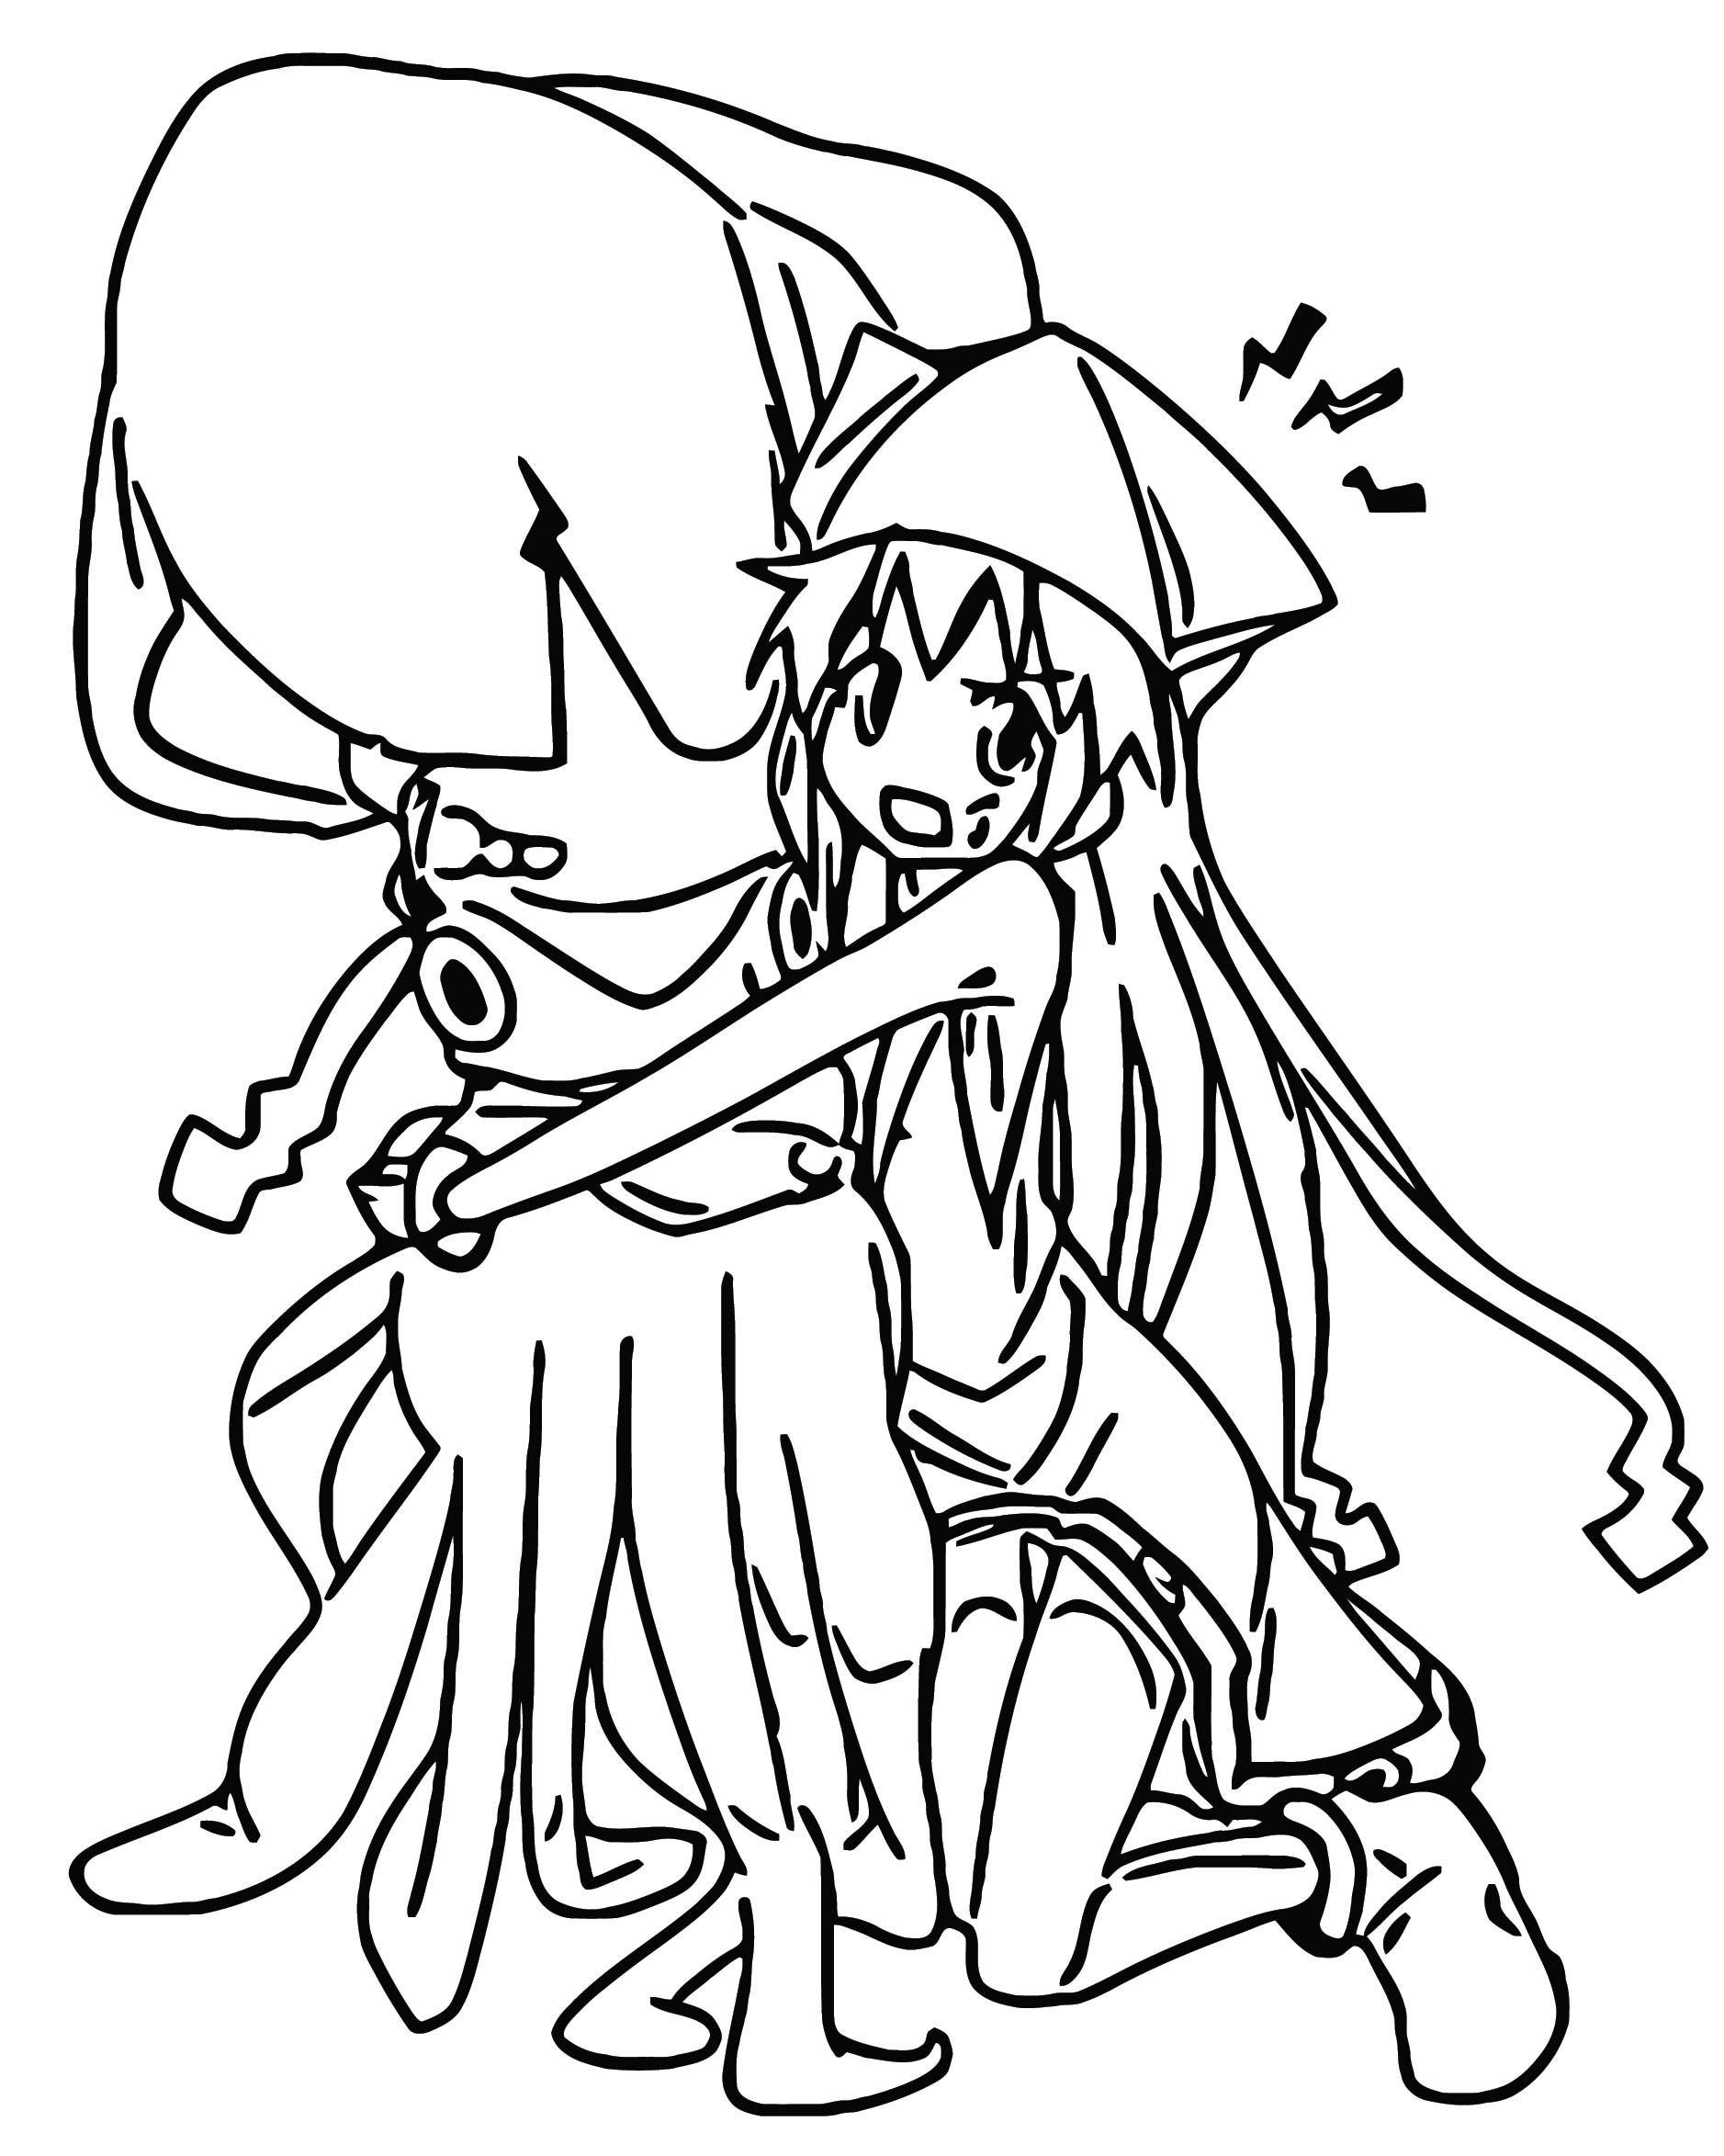 Squid Girl Image Squid Girl Cartoon Coloring Page